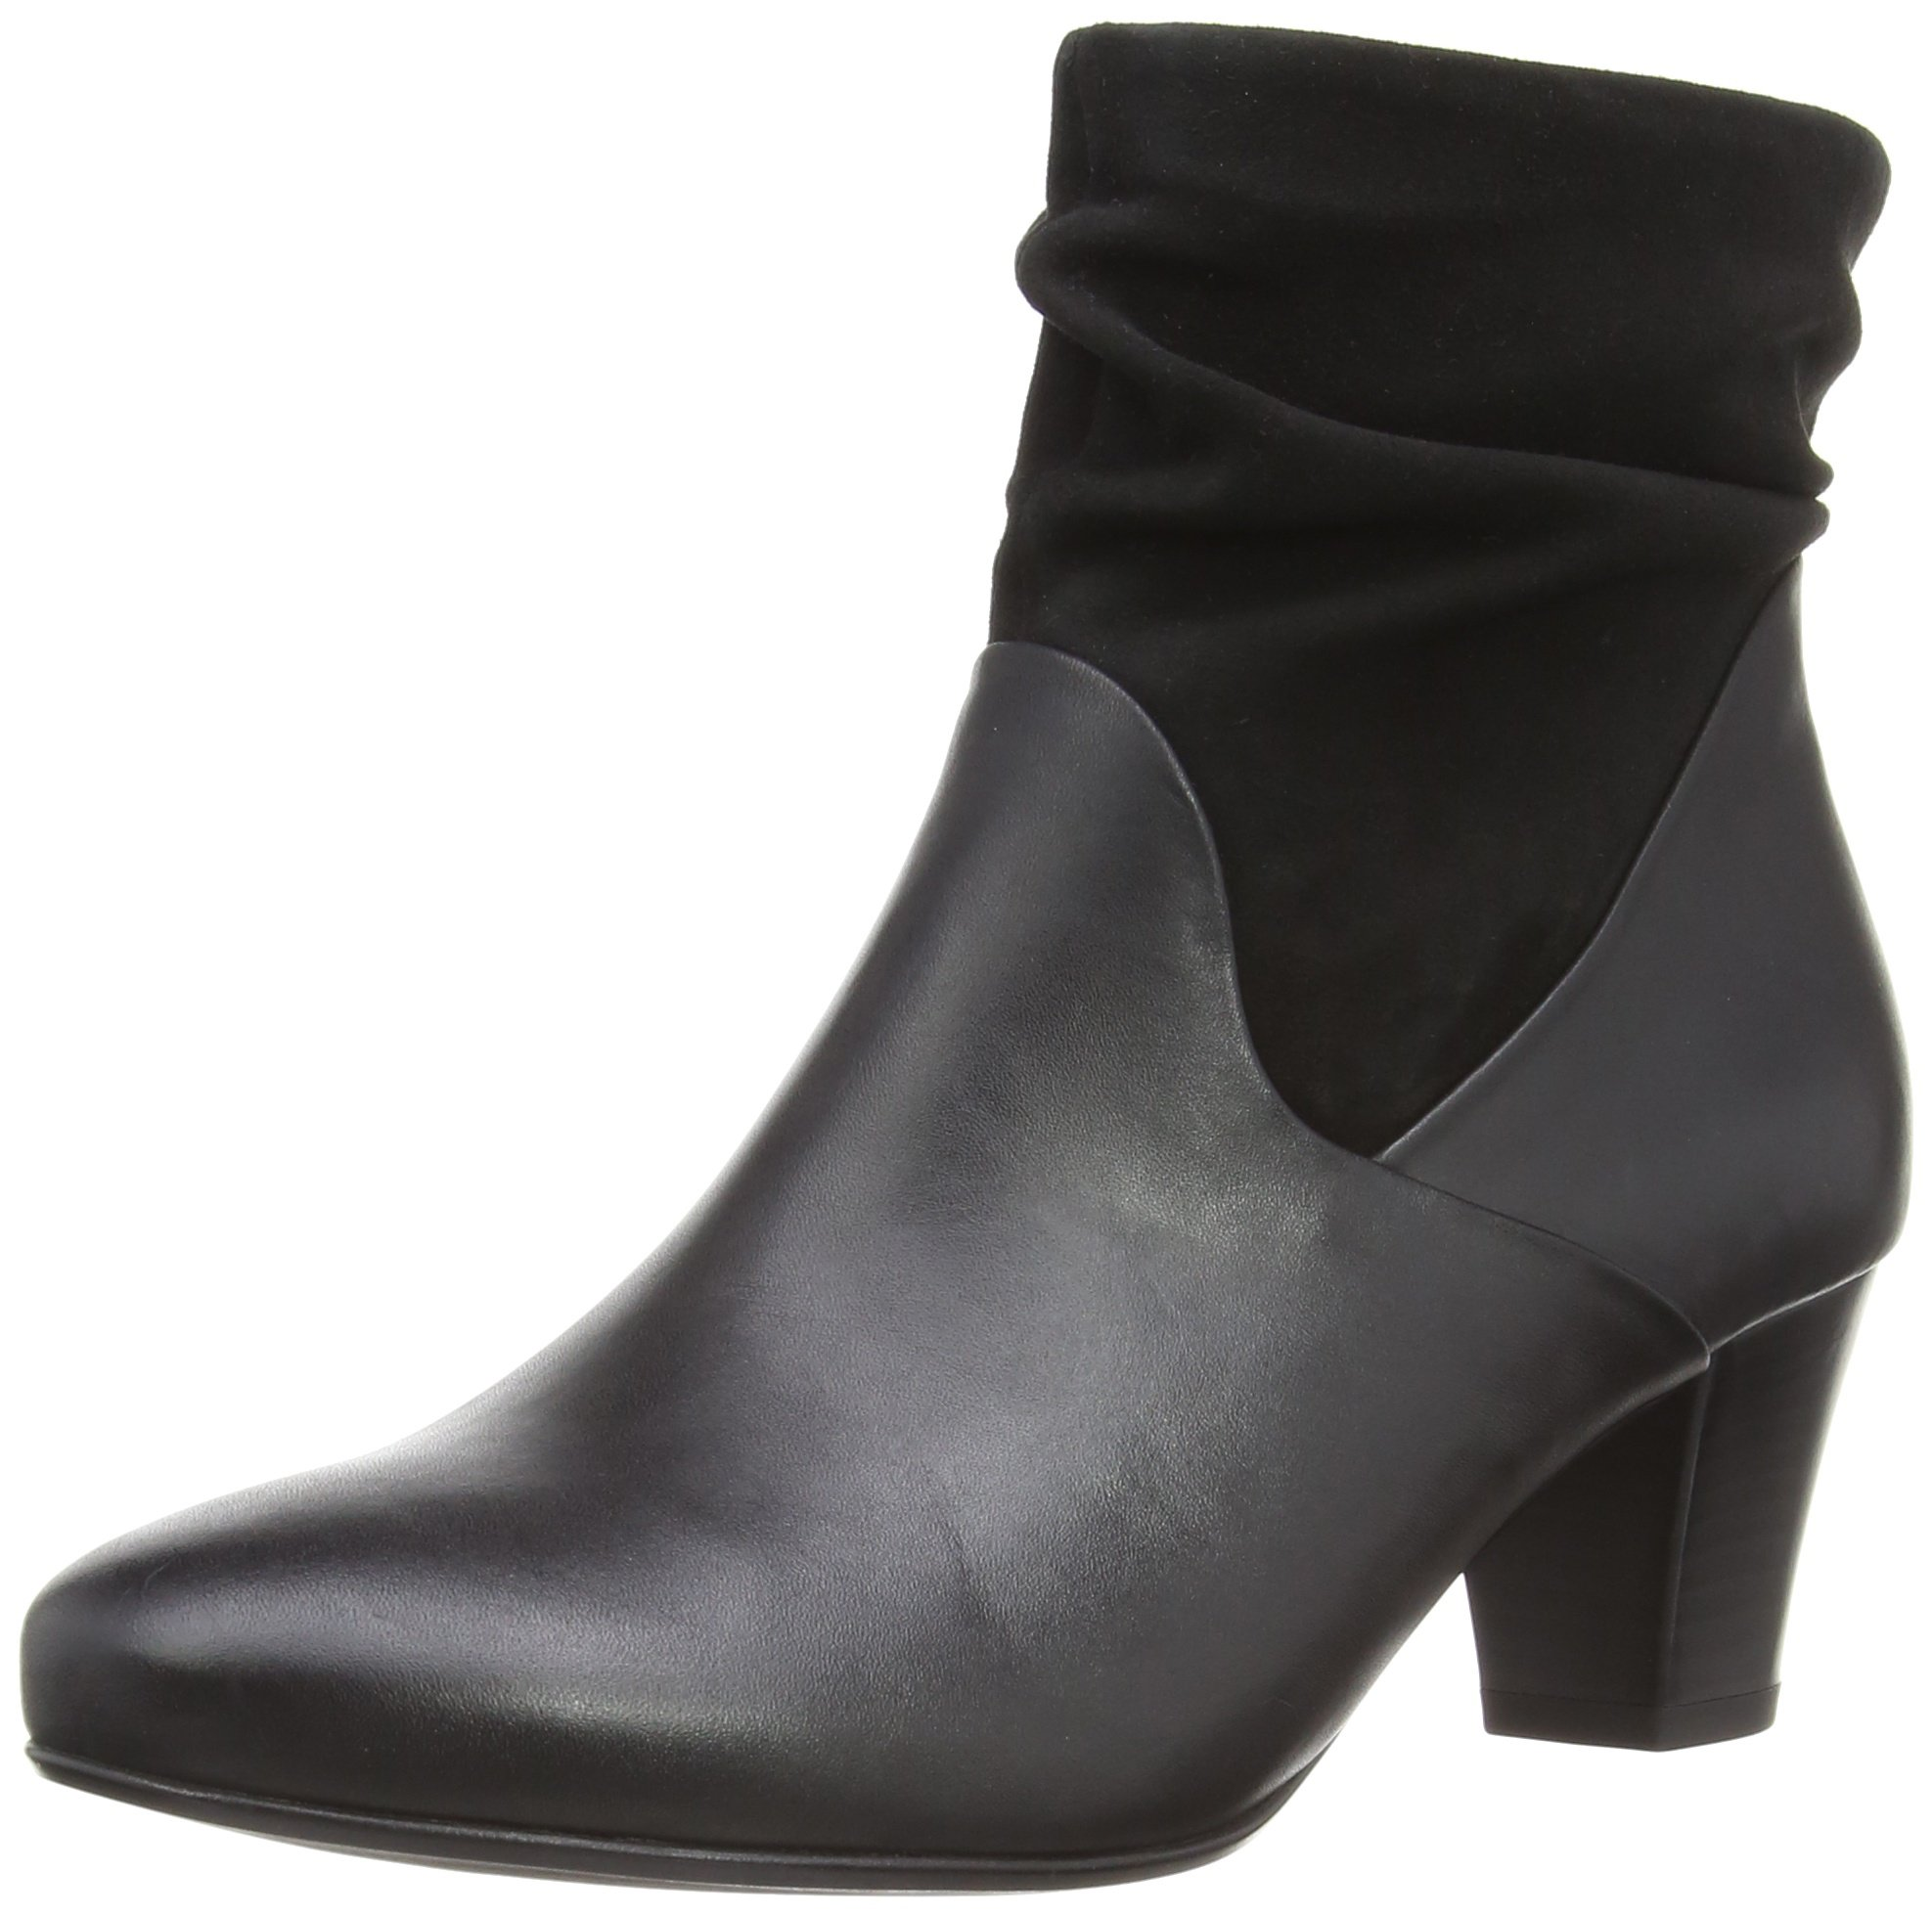 FemmeNoirblack Eu 5 Gabor Leather AffairBoots suede38 f76vgmIYby